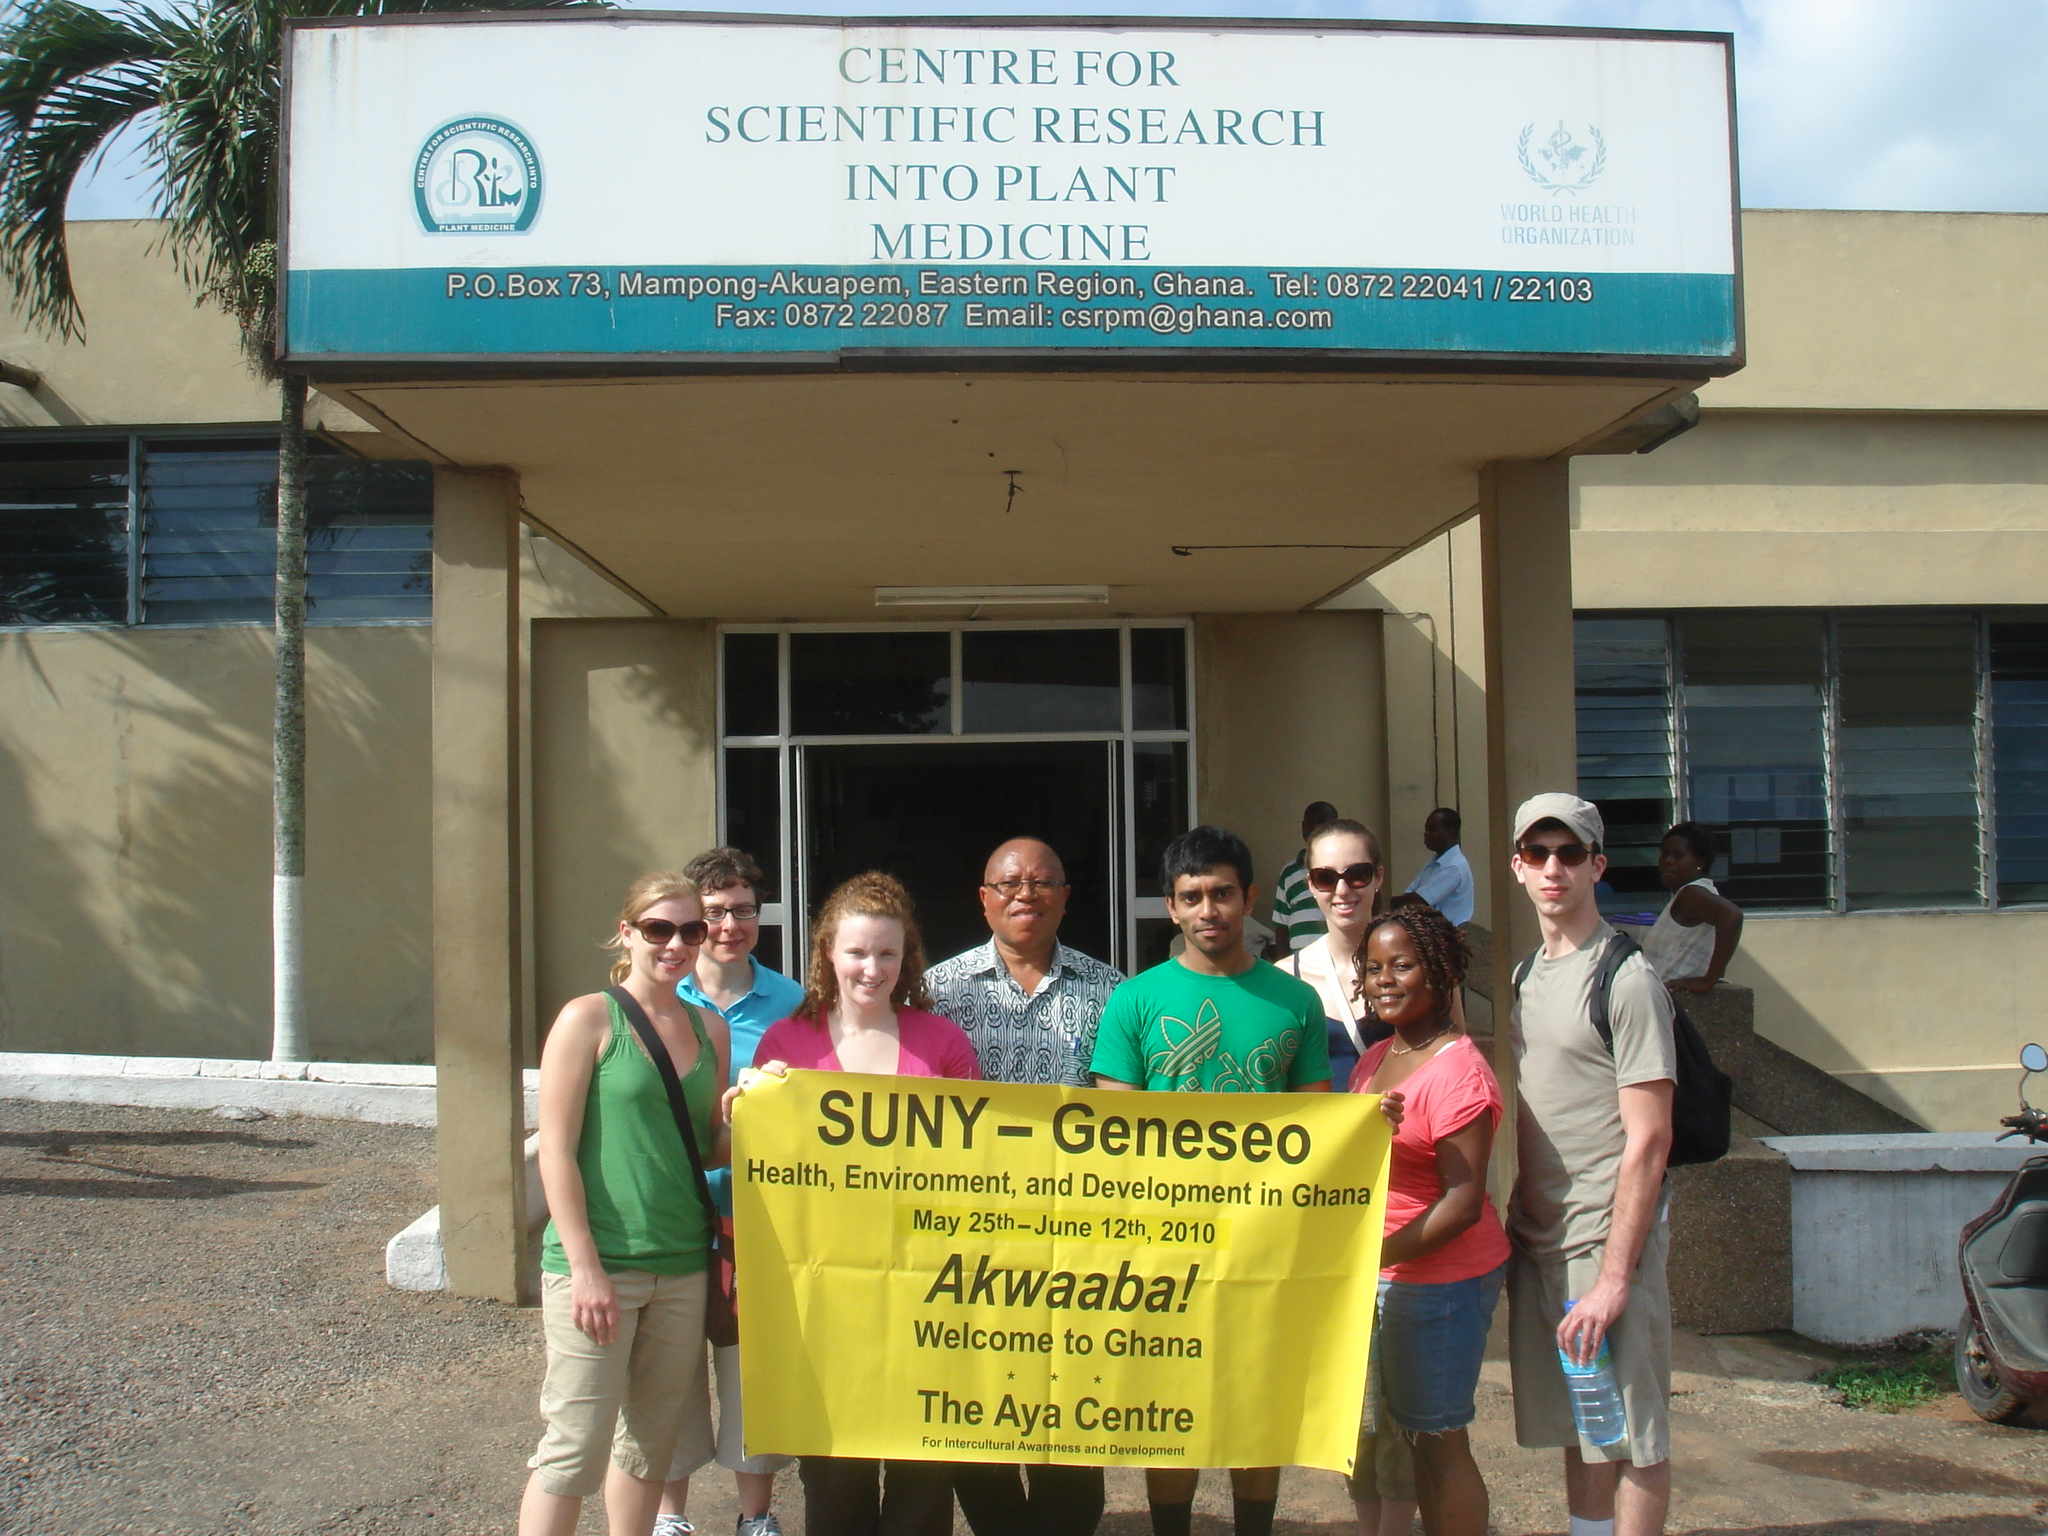 group photo in front of center for scientific research into plant medicine